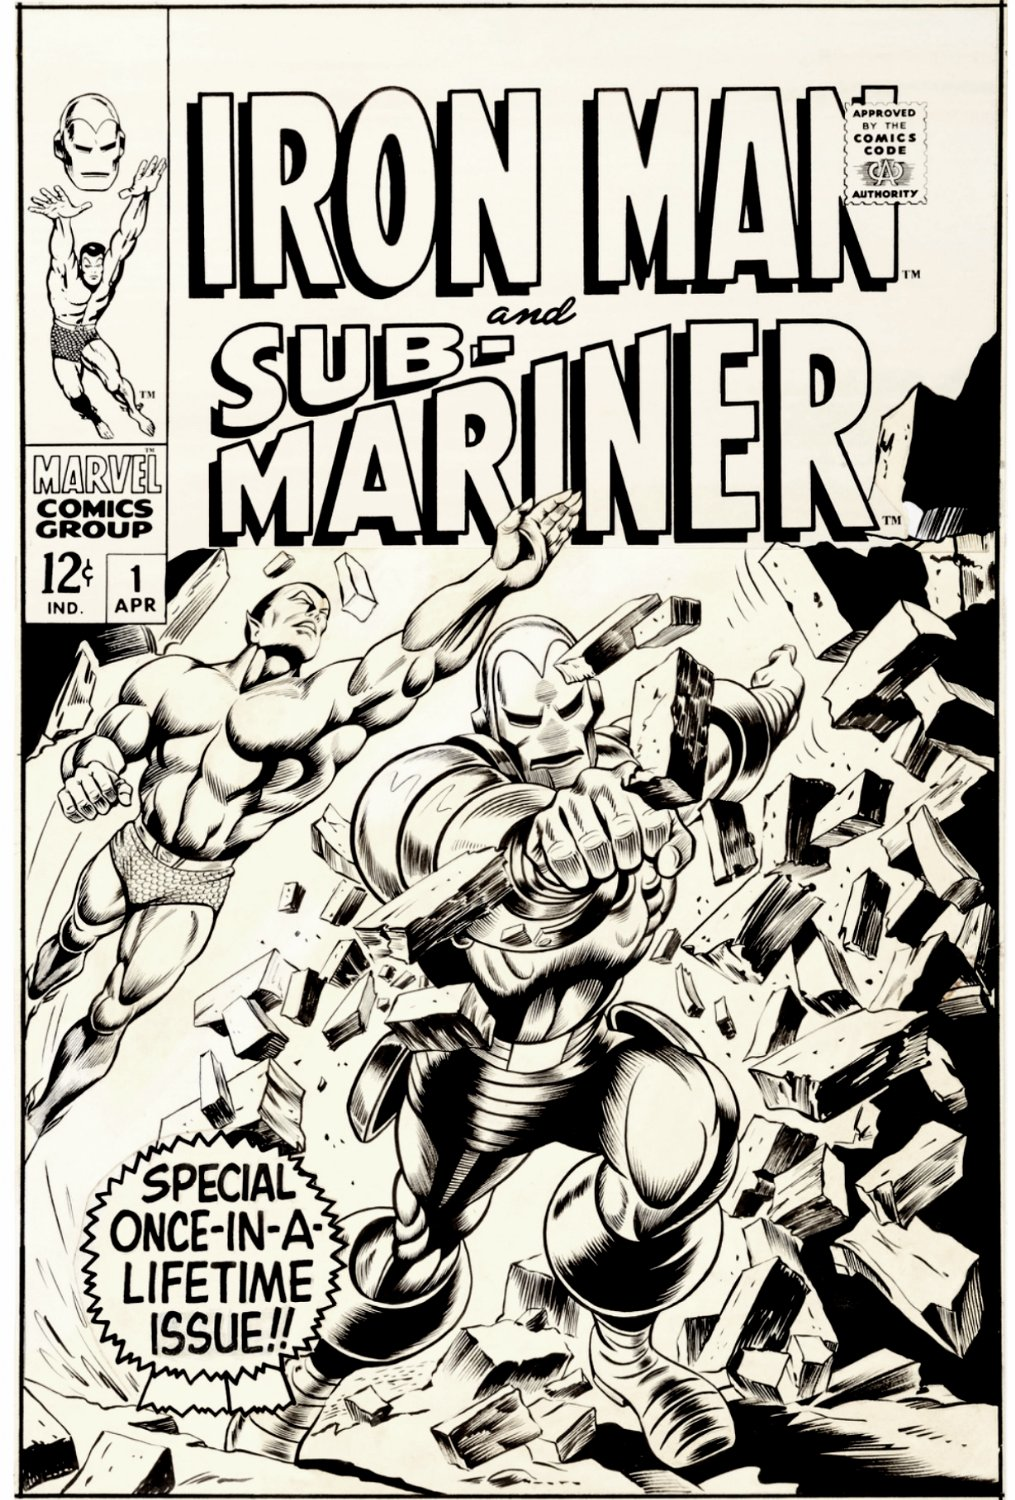 Iron Man & Sub-Mariner #1 Large Art Cover (FIRST HISTORIC 1967 COVER THAT STARTED MARVEL'S RENUMBERING THEIR TITLES!)